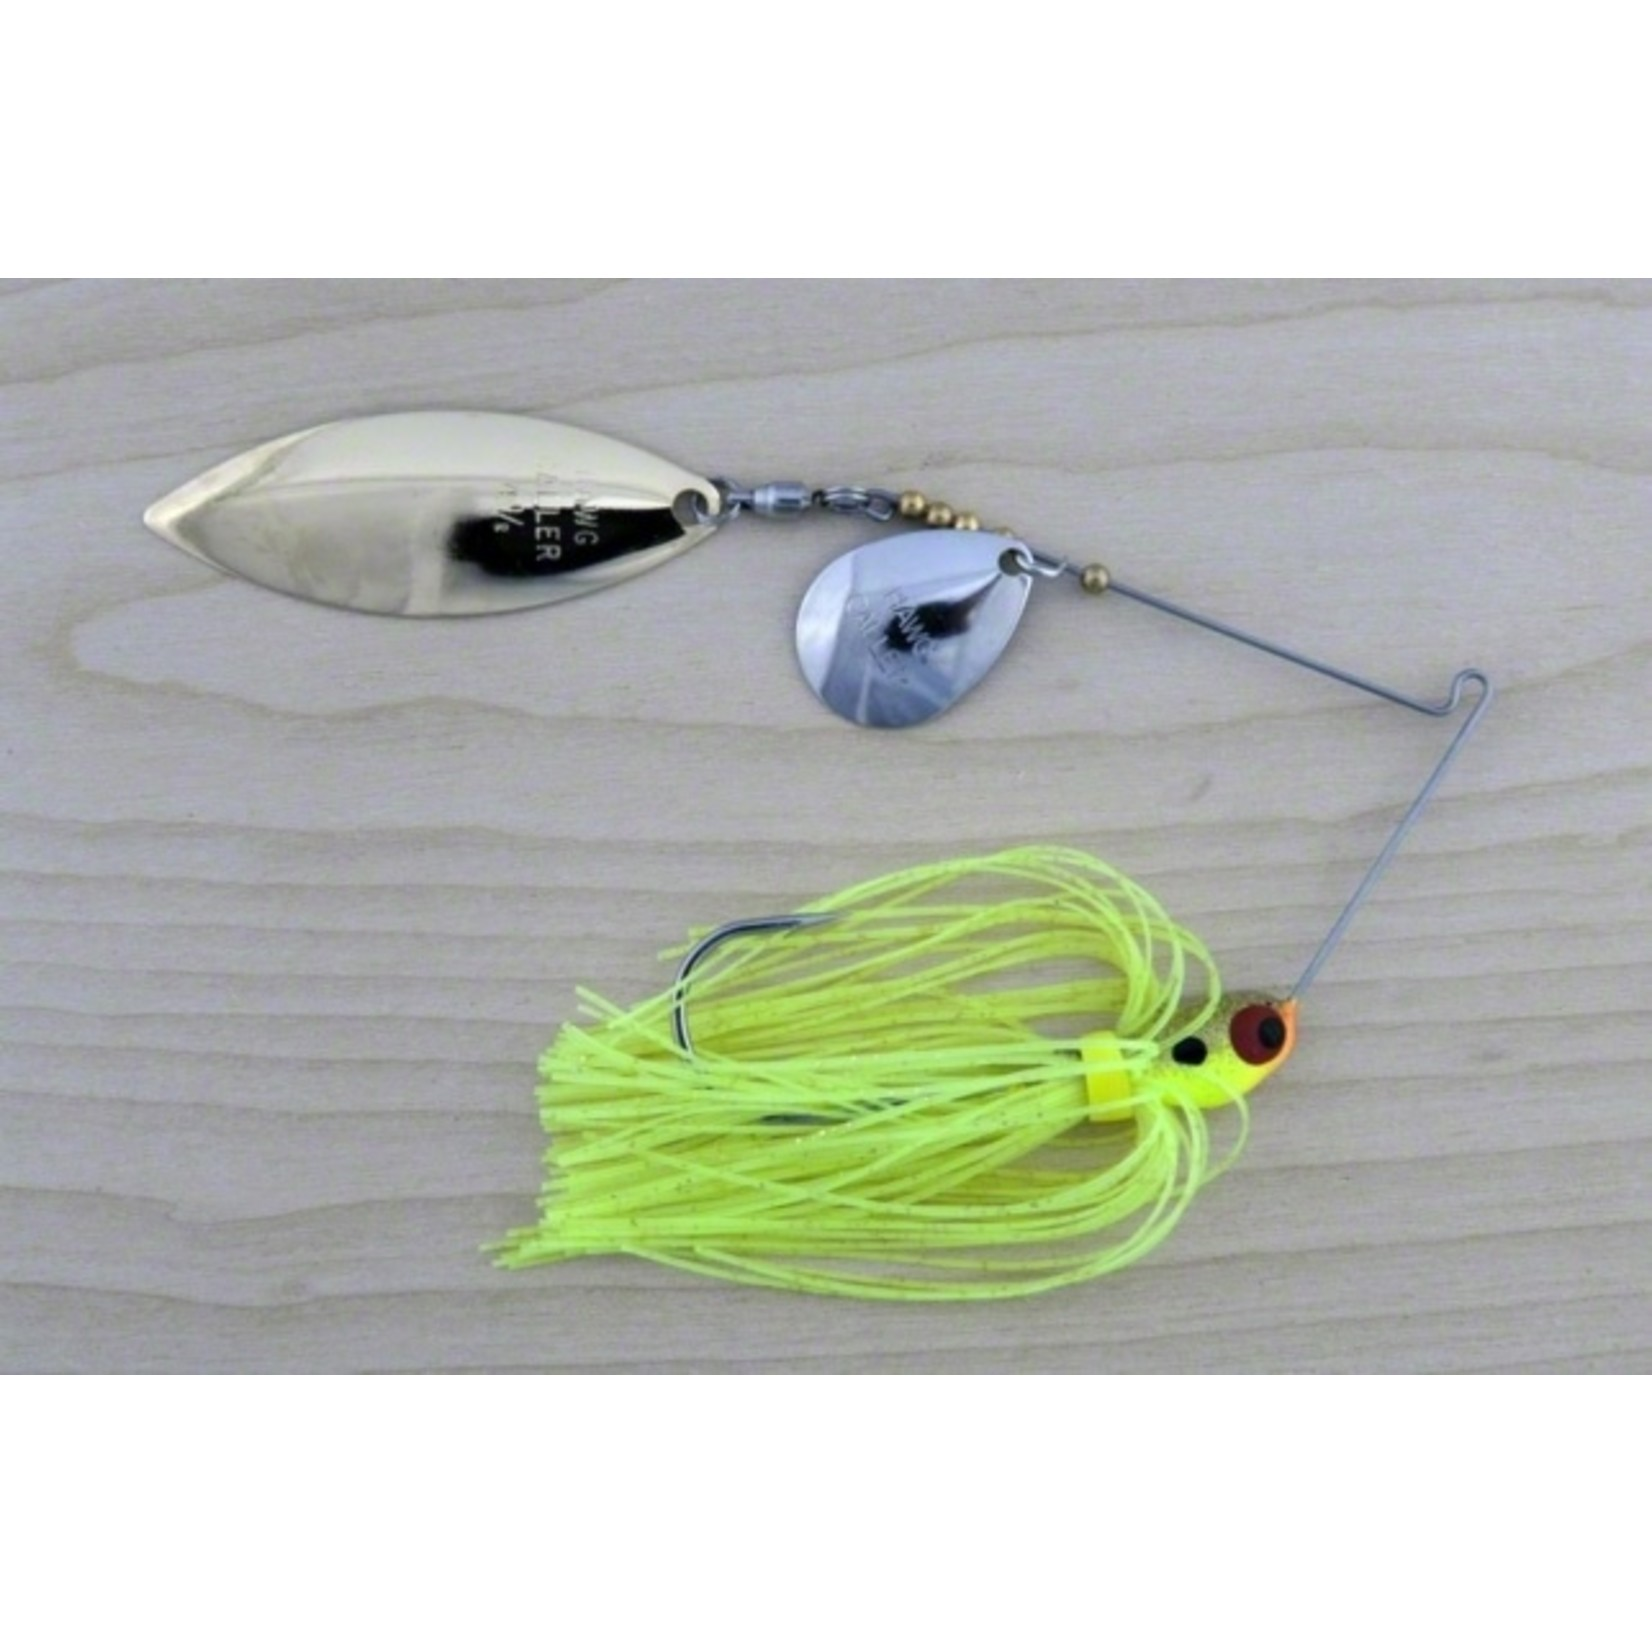 Double Blade Spinnerbait, 3/8 oz Lunker Lure PW4038 Proven Winner